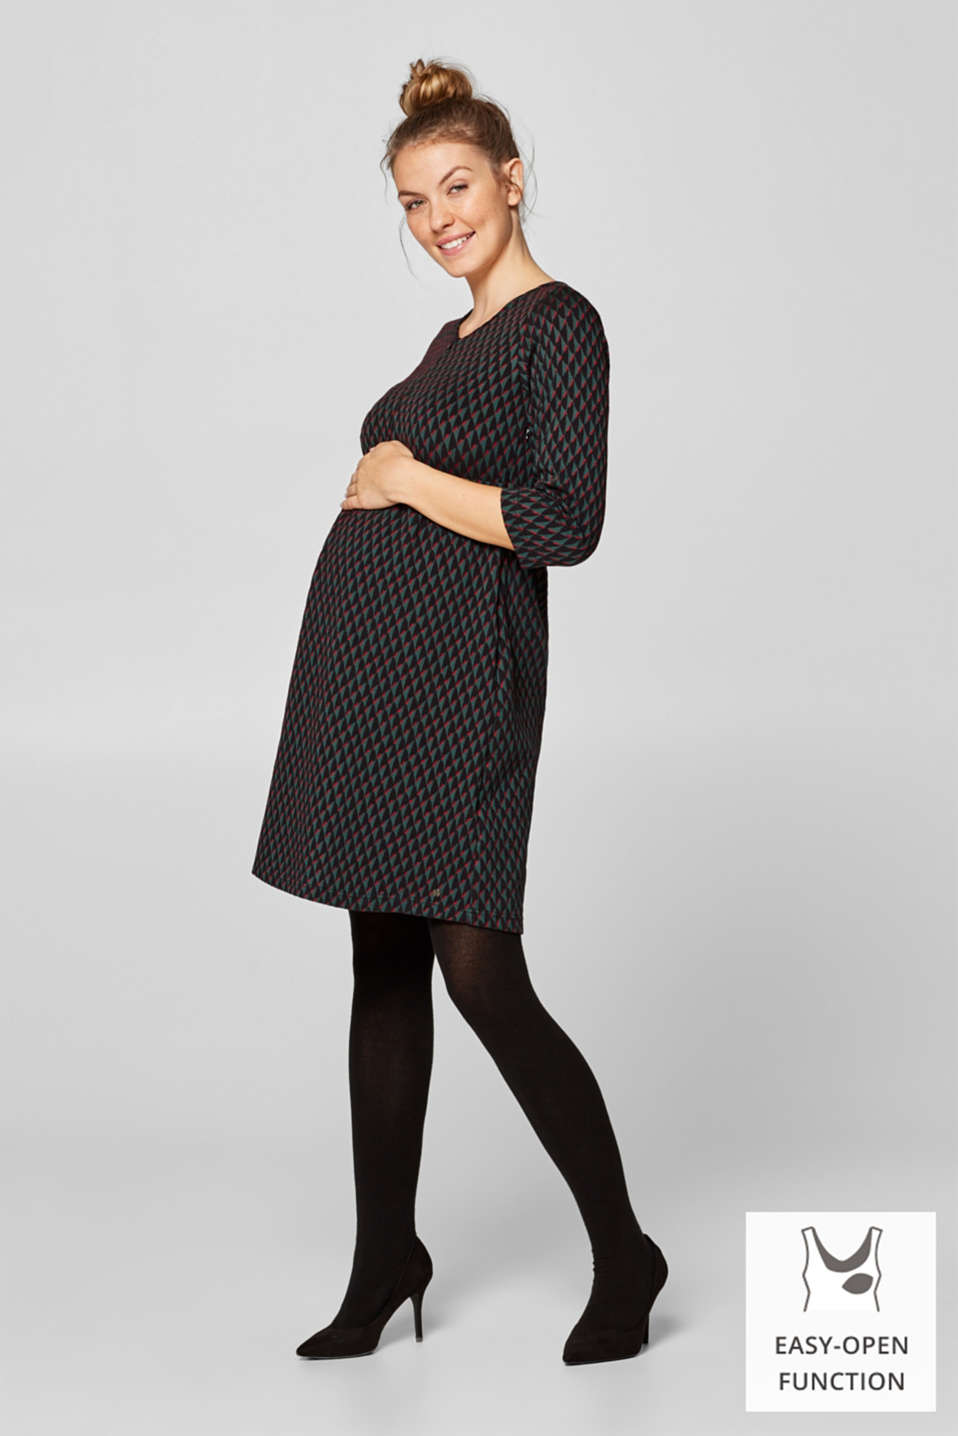 Esprit - Jacquard dress with a nursing function